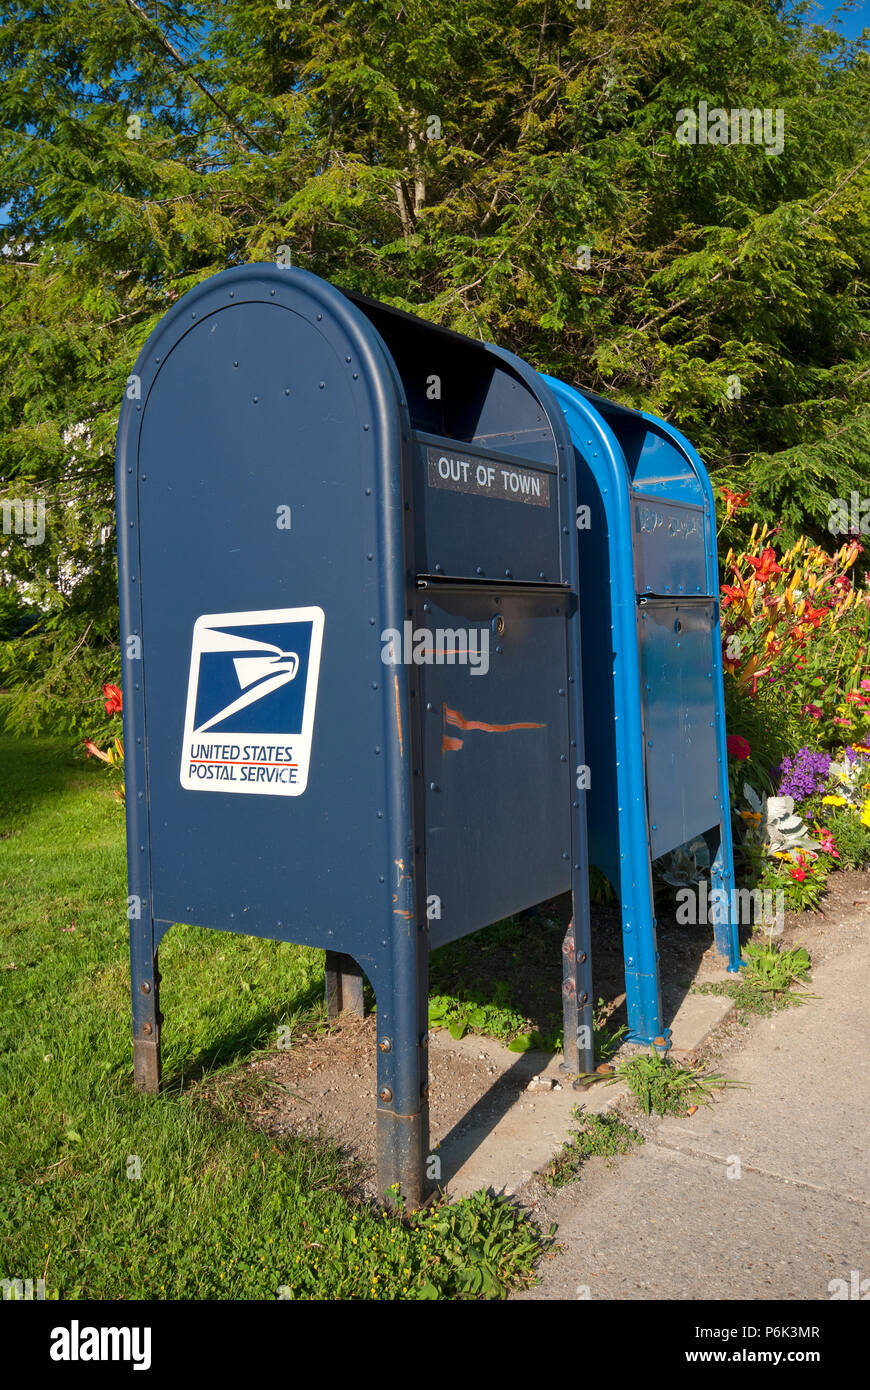 United States Postal Service box in Stockbridge, Berkshire County, Massachusetts, USA - Stock Image